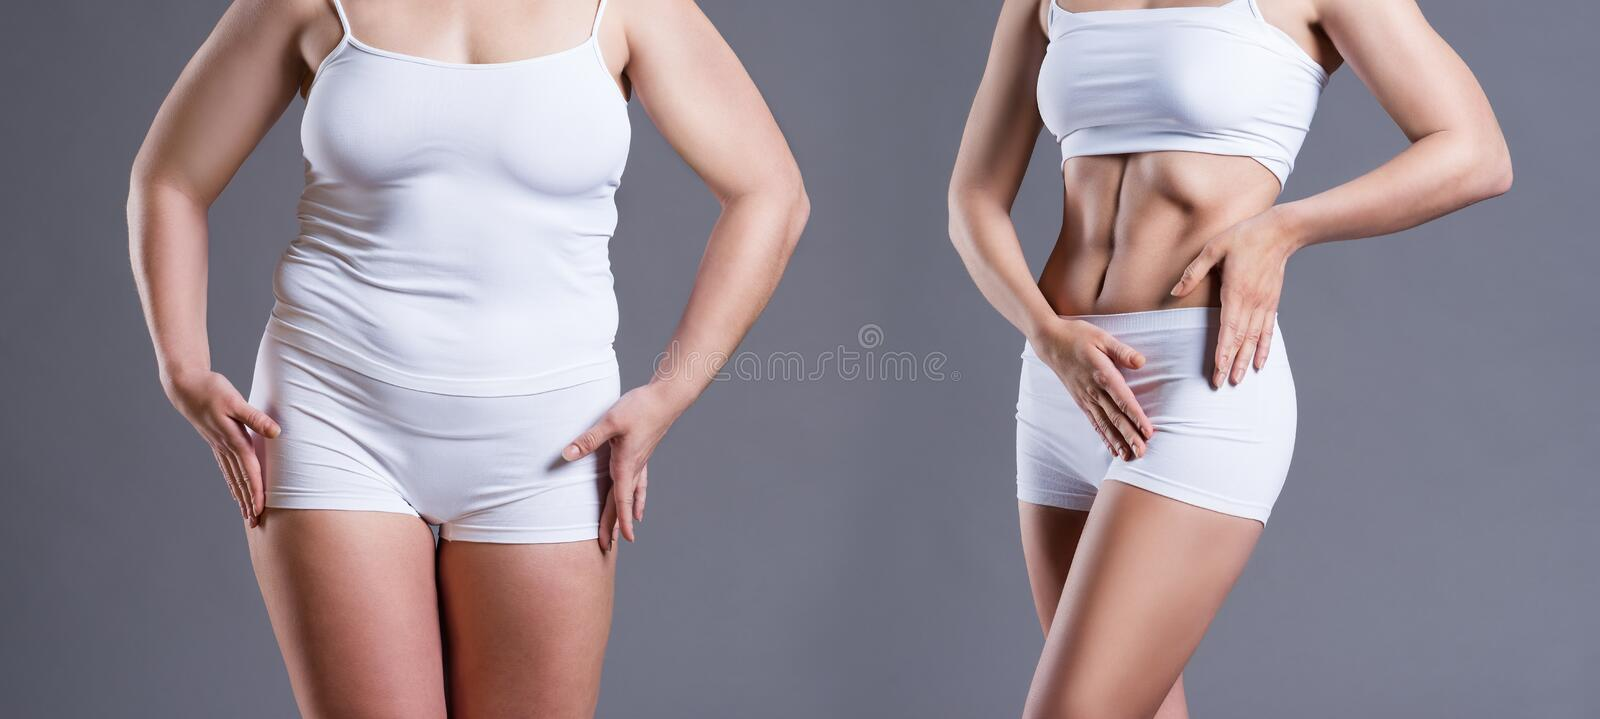 Woman`s body before and after weight loss on gray background. Plastic surgery concept stock image